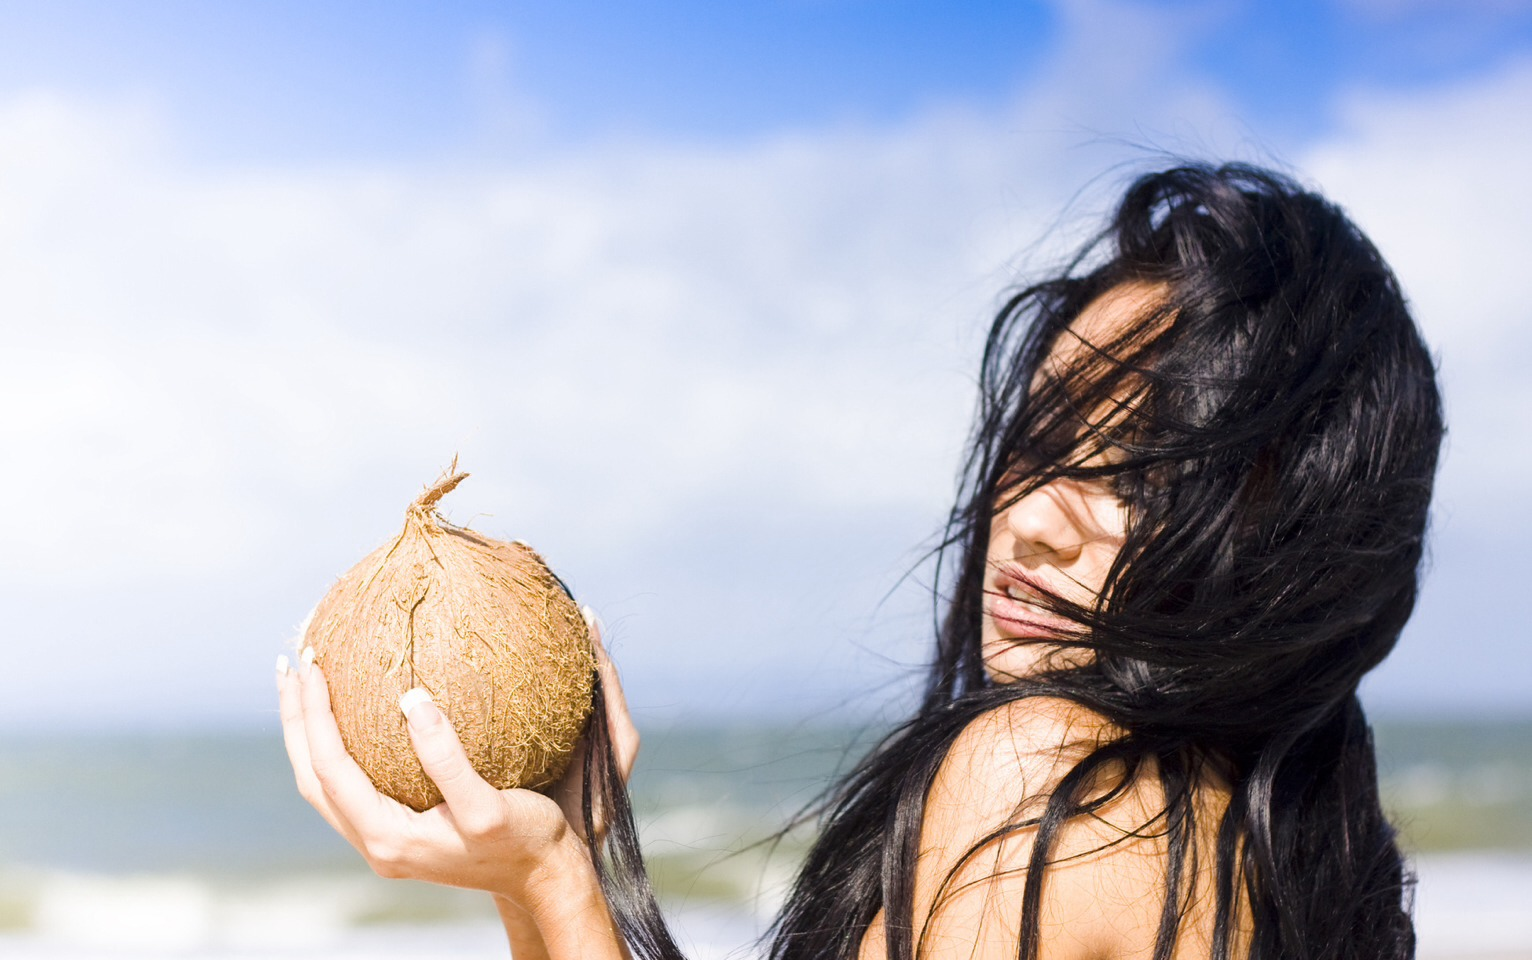 Coconut oil 😘 I use coconut oil to condition my hair and keep it soft and healthy. I also use it every night to remove my makeup, coconut oil will instantly with one gentle swipe get rid of even the toughest water proof mascara, saves you time when all you want to do is go to sleep.